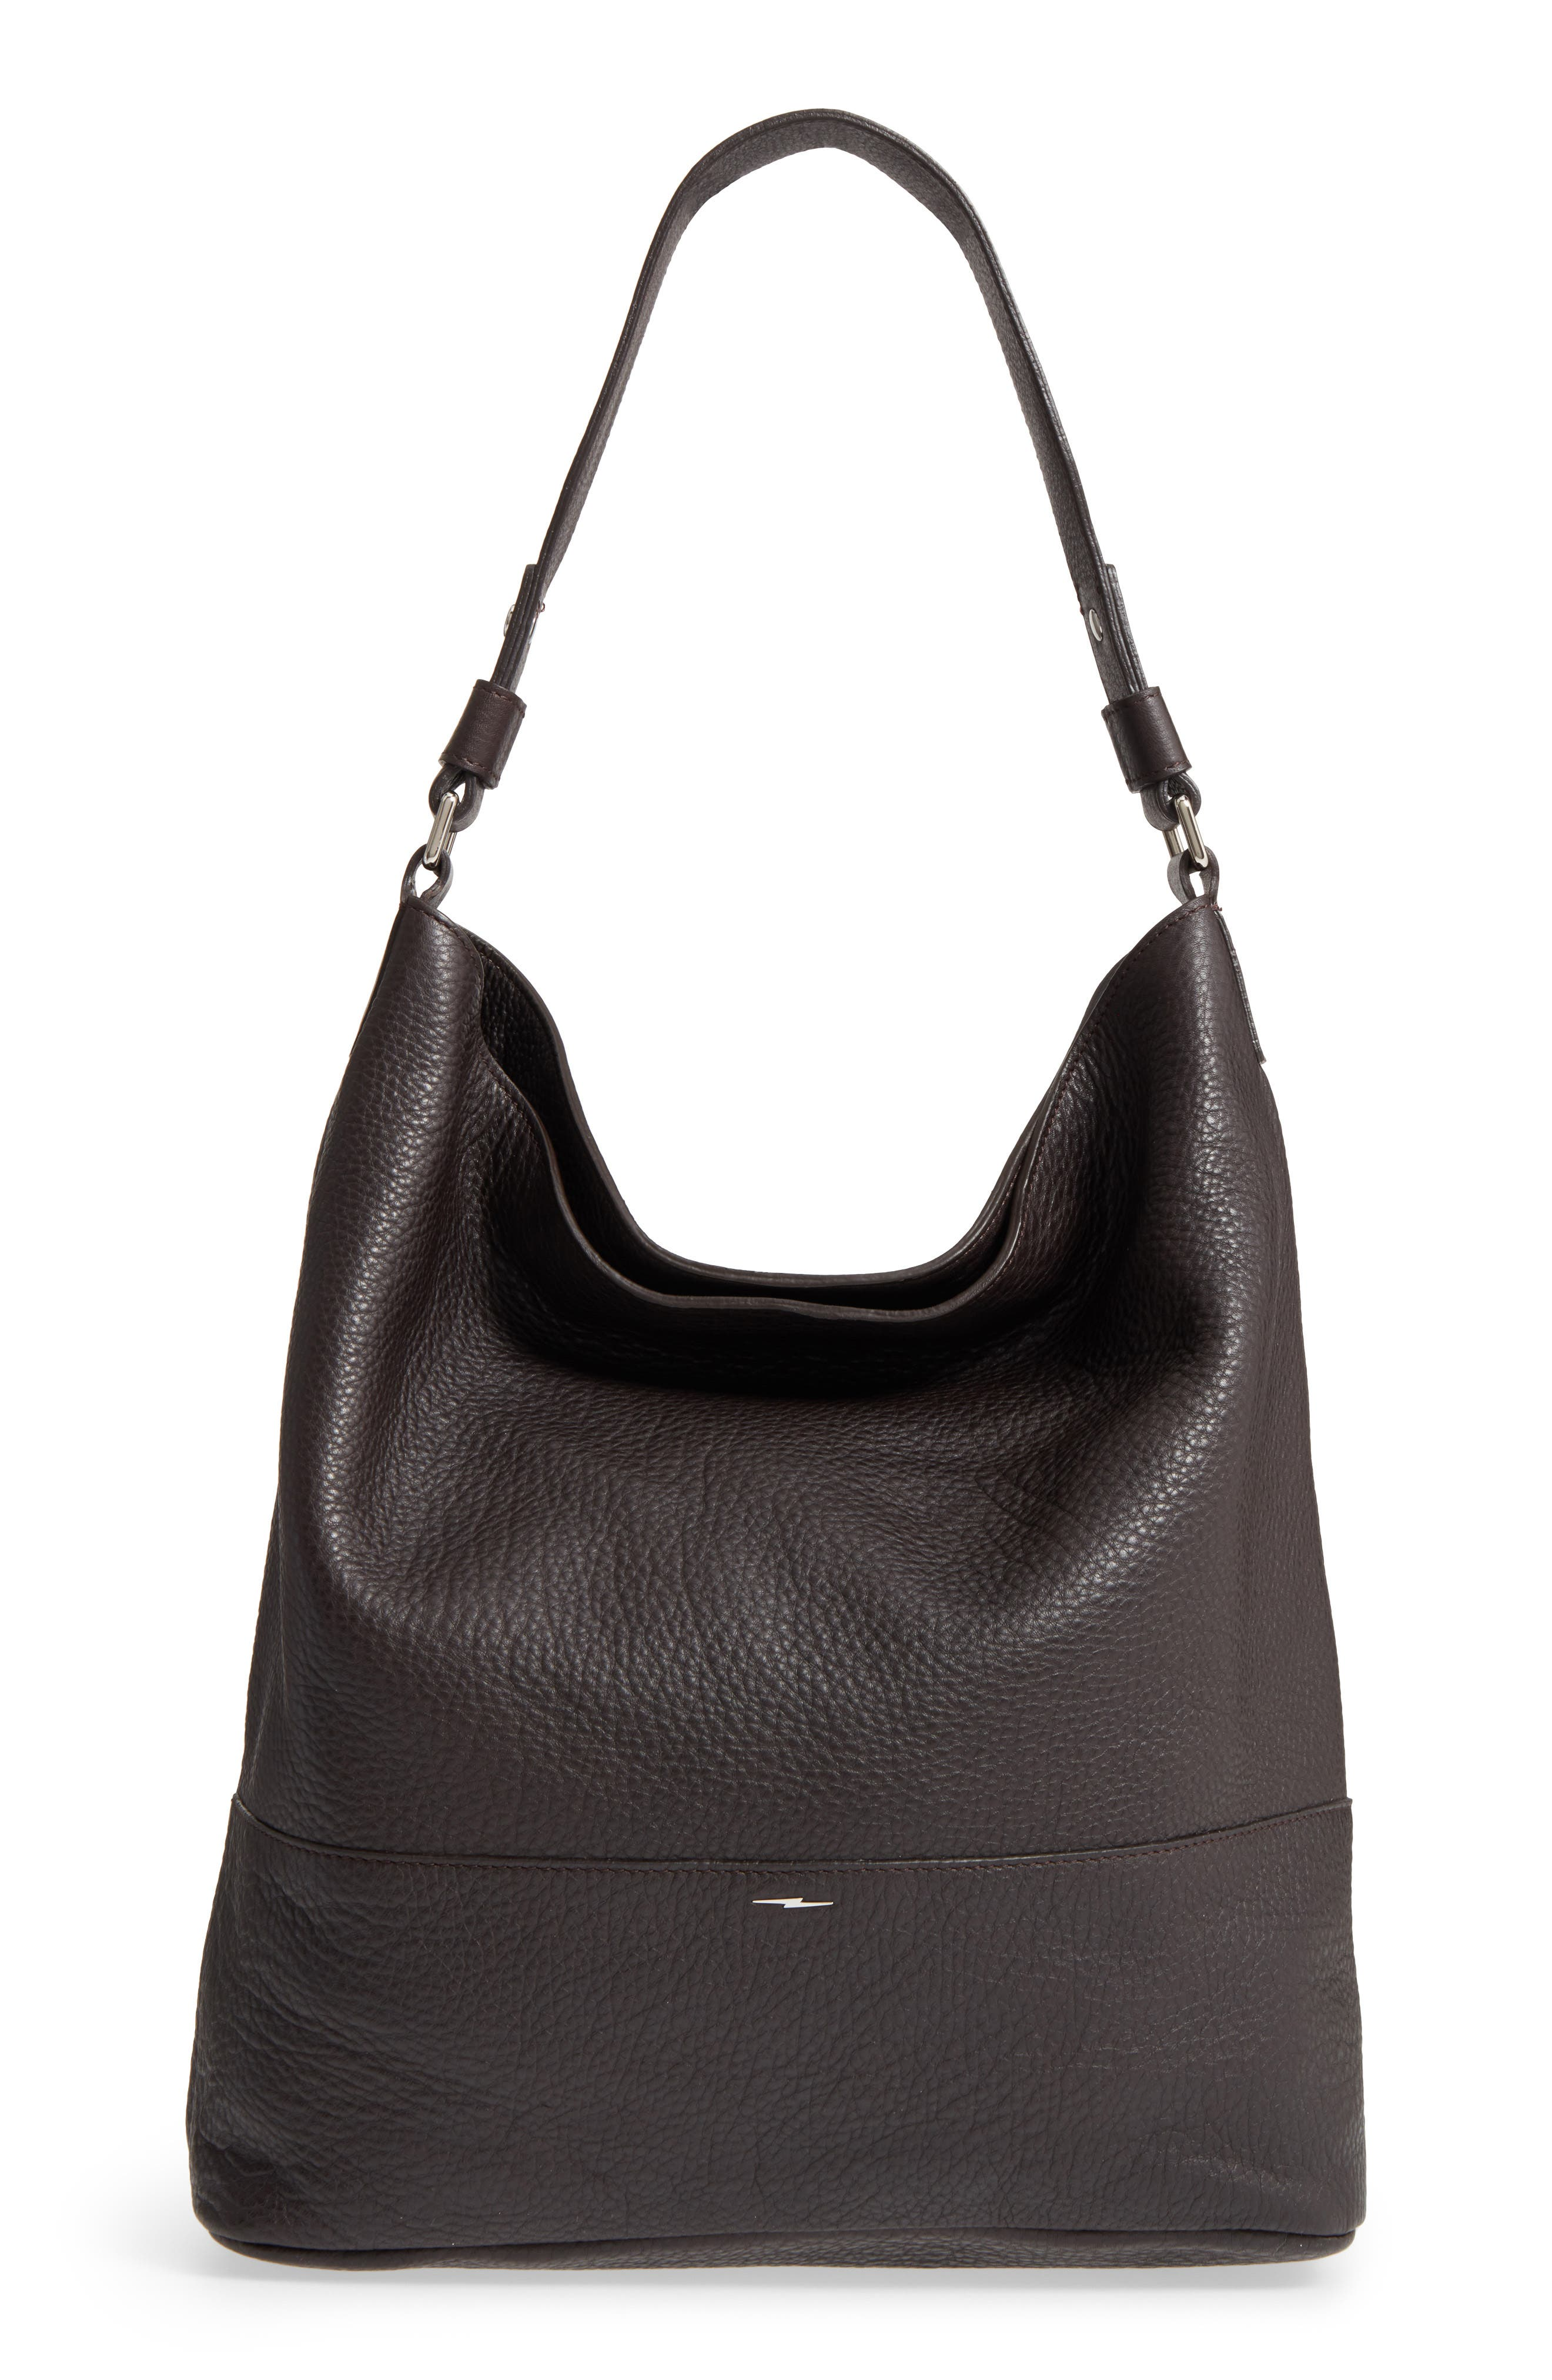 Relaxed Calfskin Leather Hobo Bag,                         Main,                         color, 240